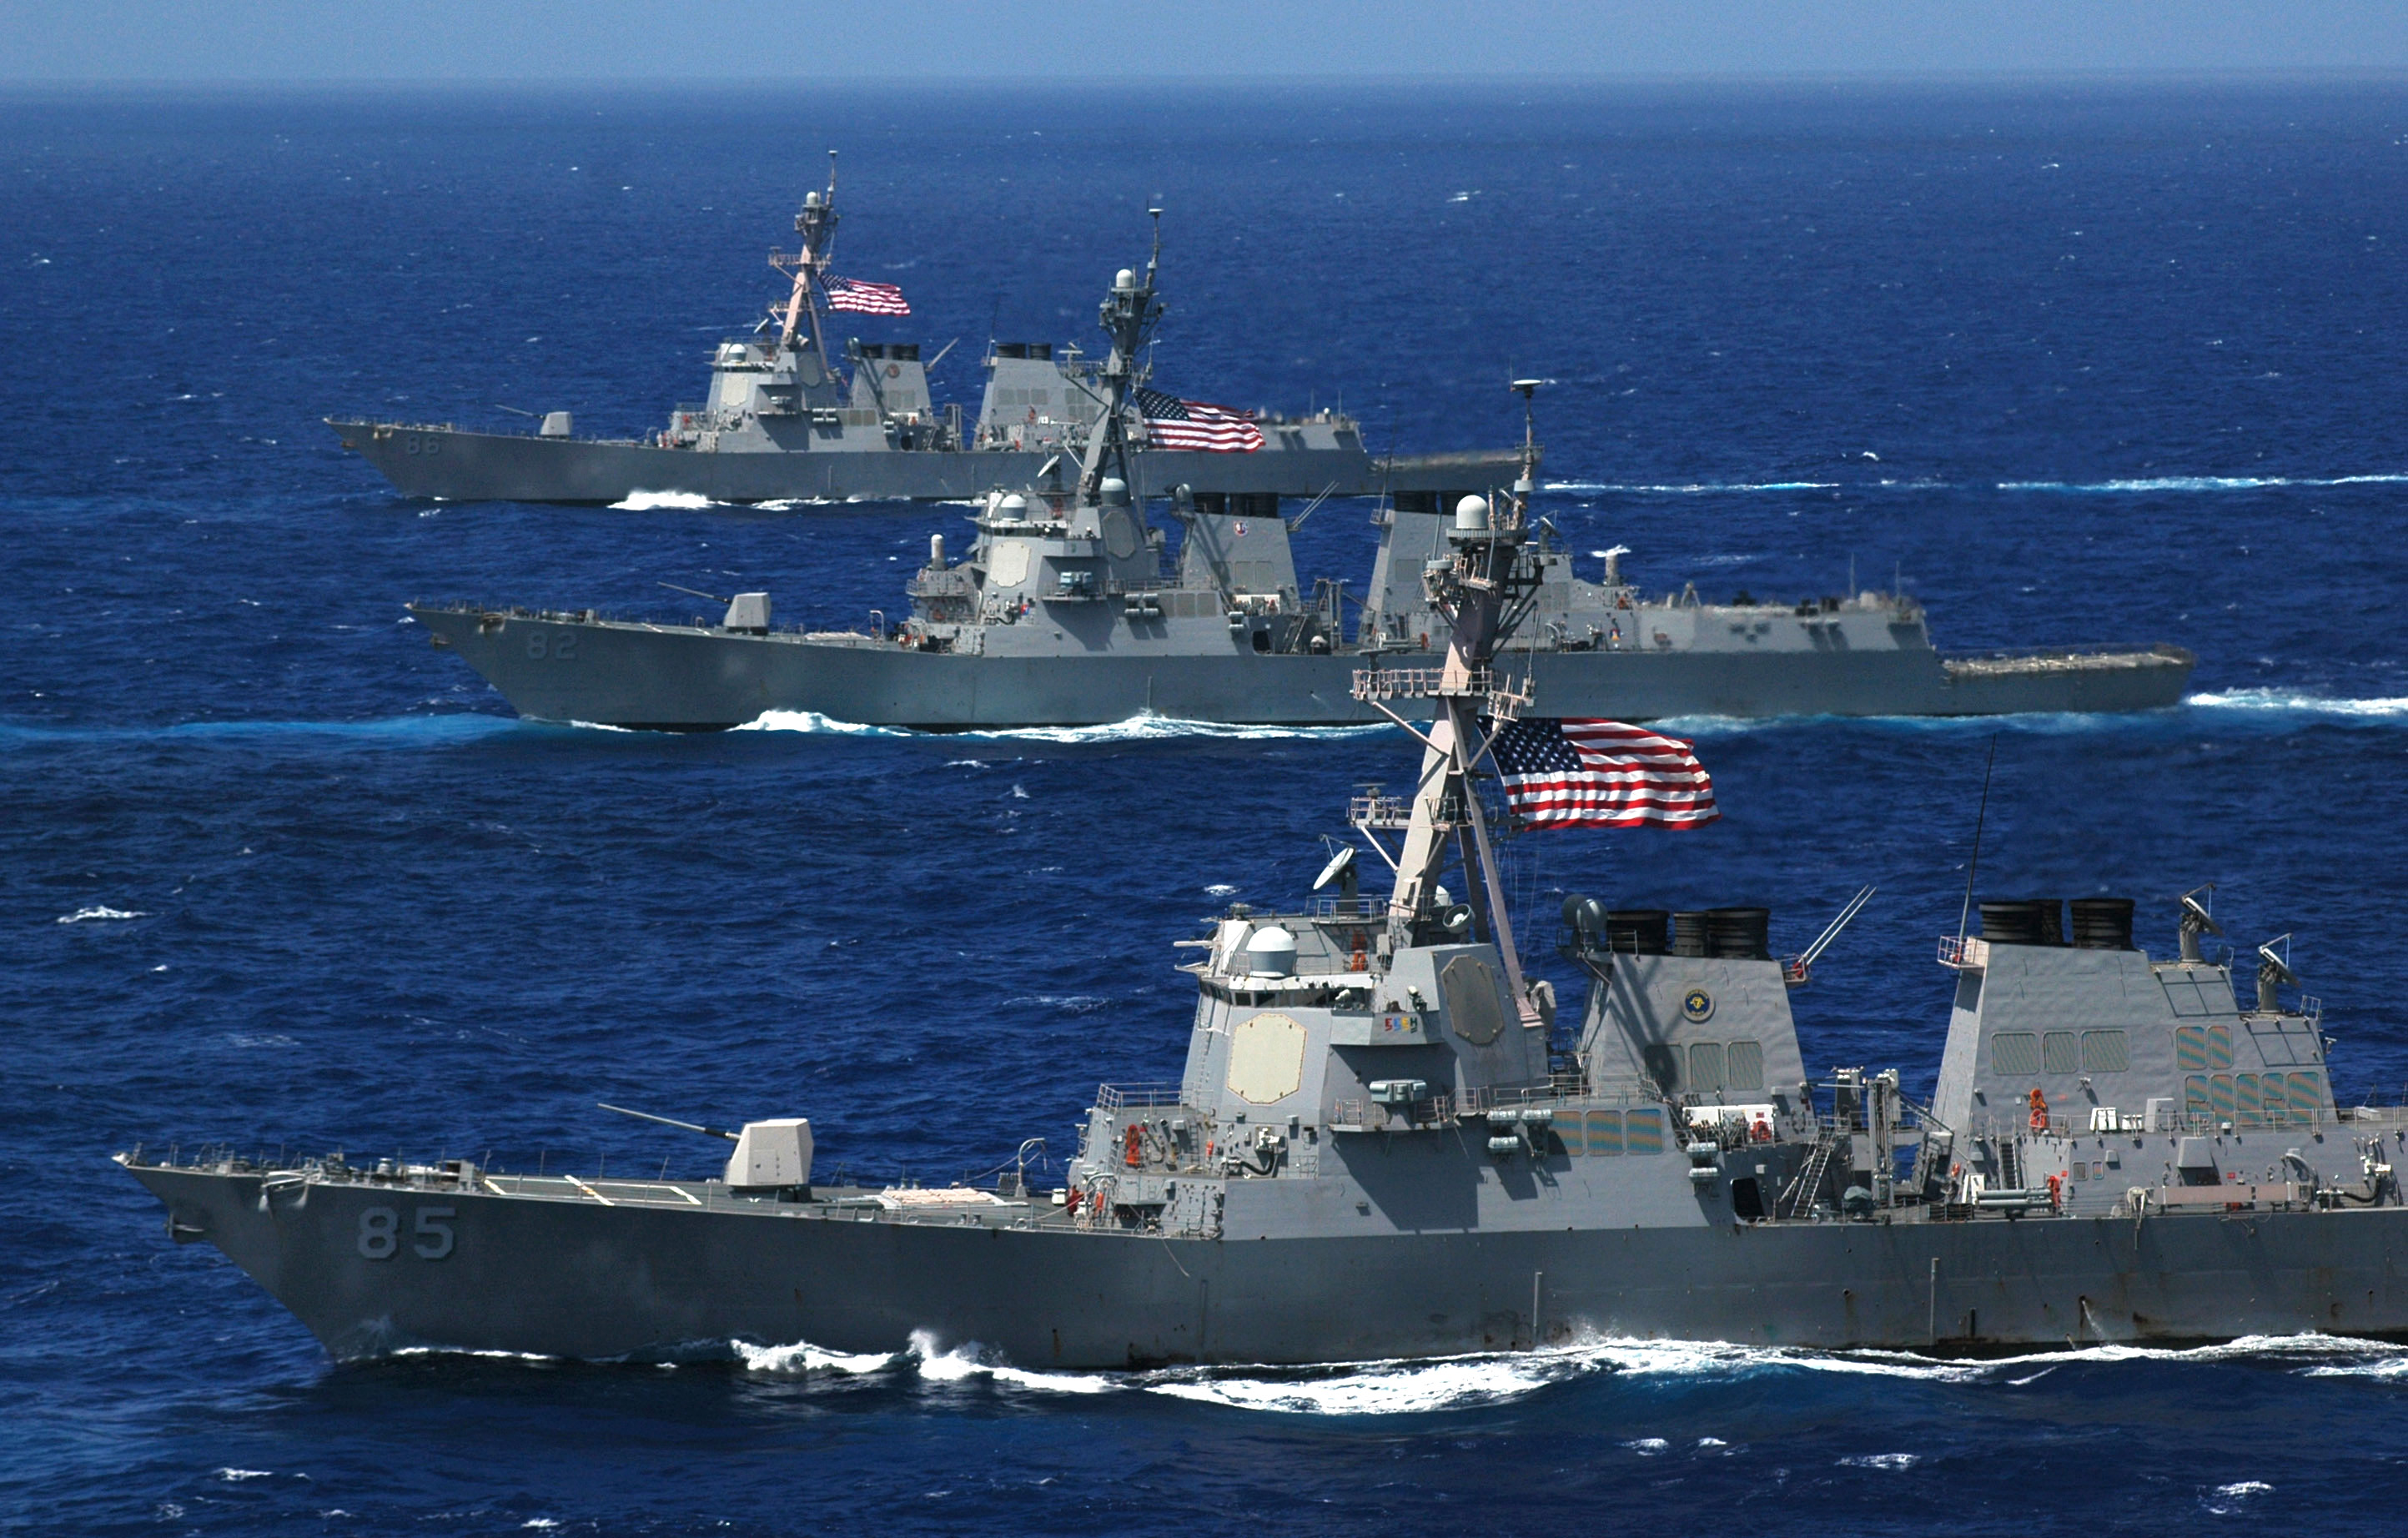 armée americaine - Page 2 US_Navy_060618-N-8492C-066_Three_Arleigh_Burke-class_guided-missile_destroyers,_the_USS_McCampbell_(DDG_85),_USS_Lassen_(DDG_82)_and_USS_Shoup_(DDG_86)_steam_in_formation_during_a_photo_exercise_(PHOTOEX)_for_Valiant_Shield_200